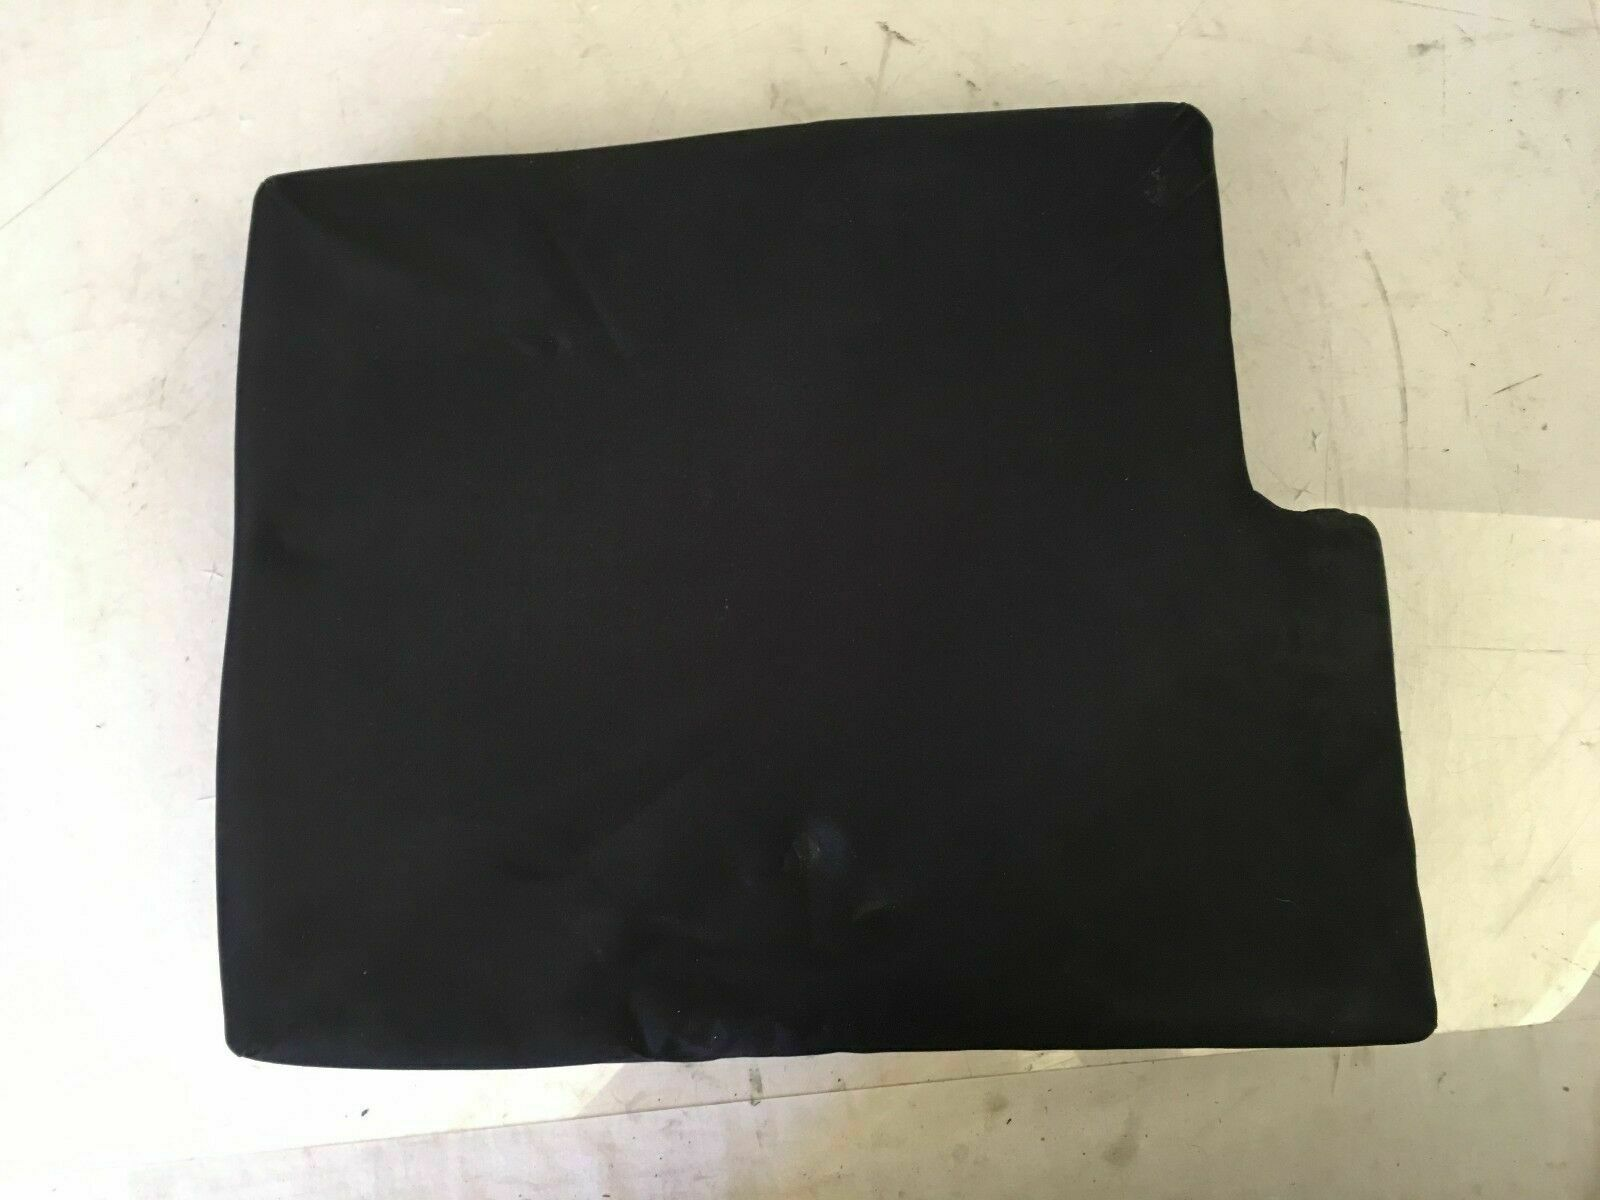 Invacare TDX SP - Seat Cushion - 20x15x4 IGC - For Power Wheelchairs image 4